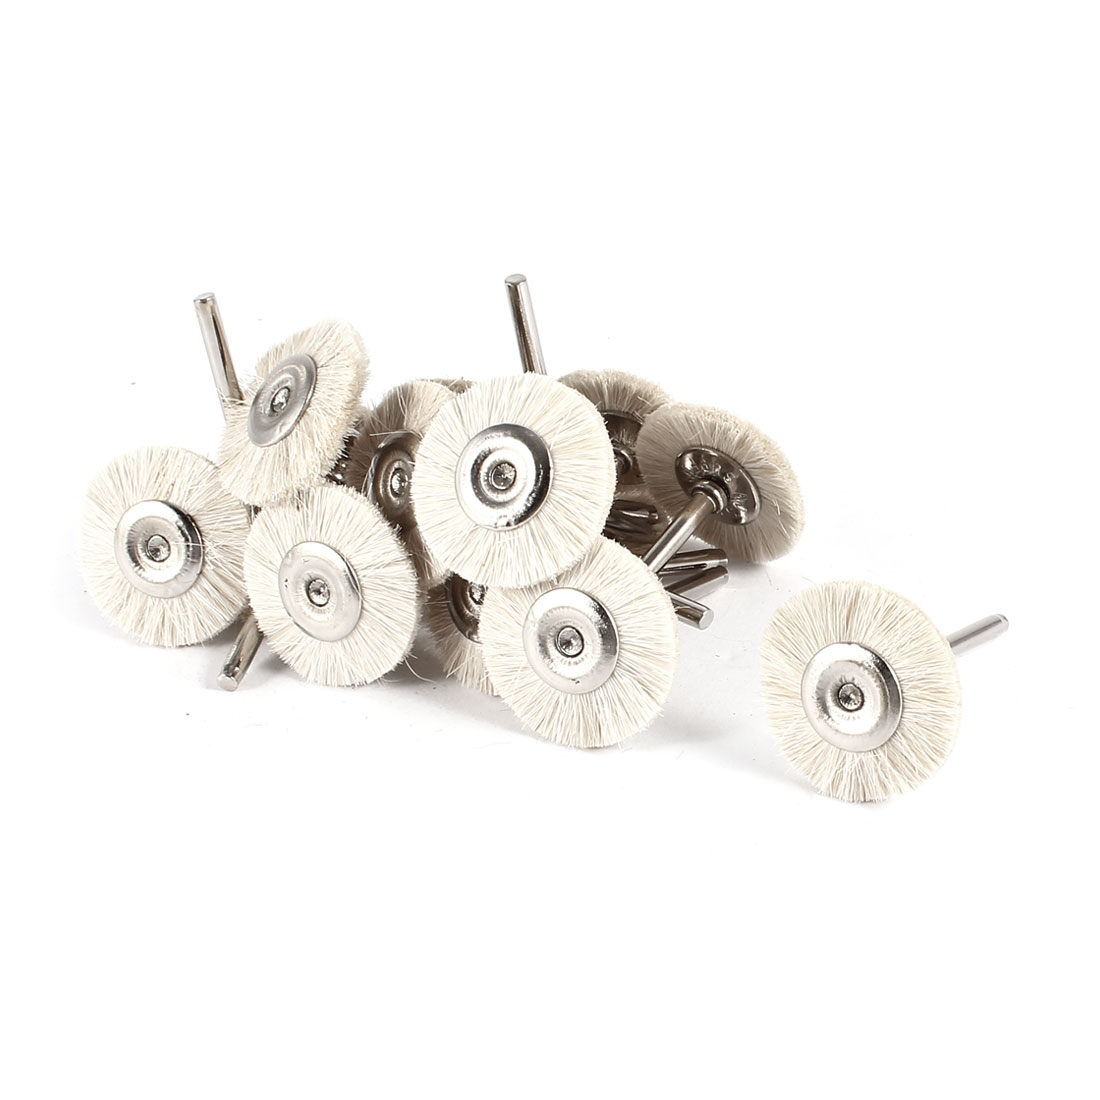 15 Pcs 25mm Dia Beige Brush Polishing Wheel Polishers for Rotary Tool